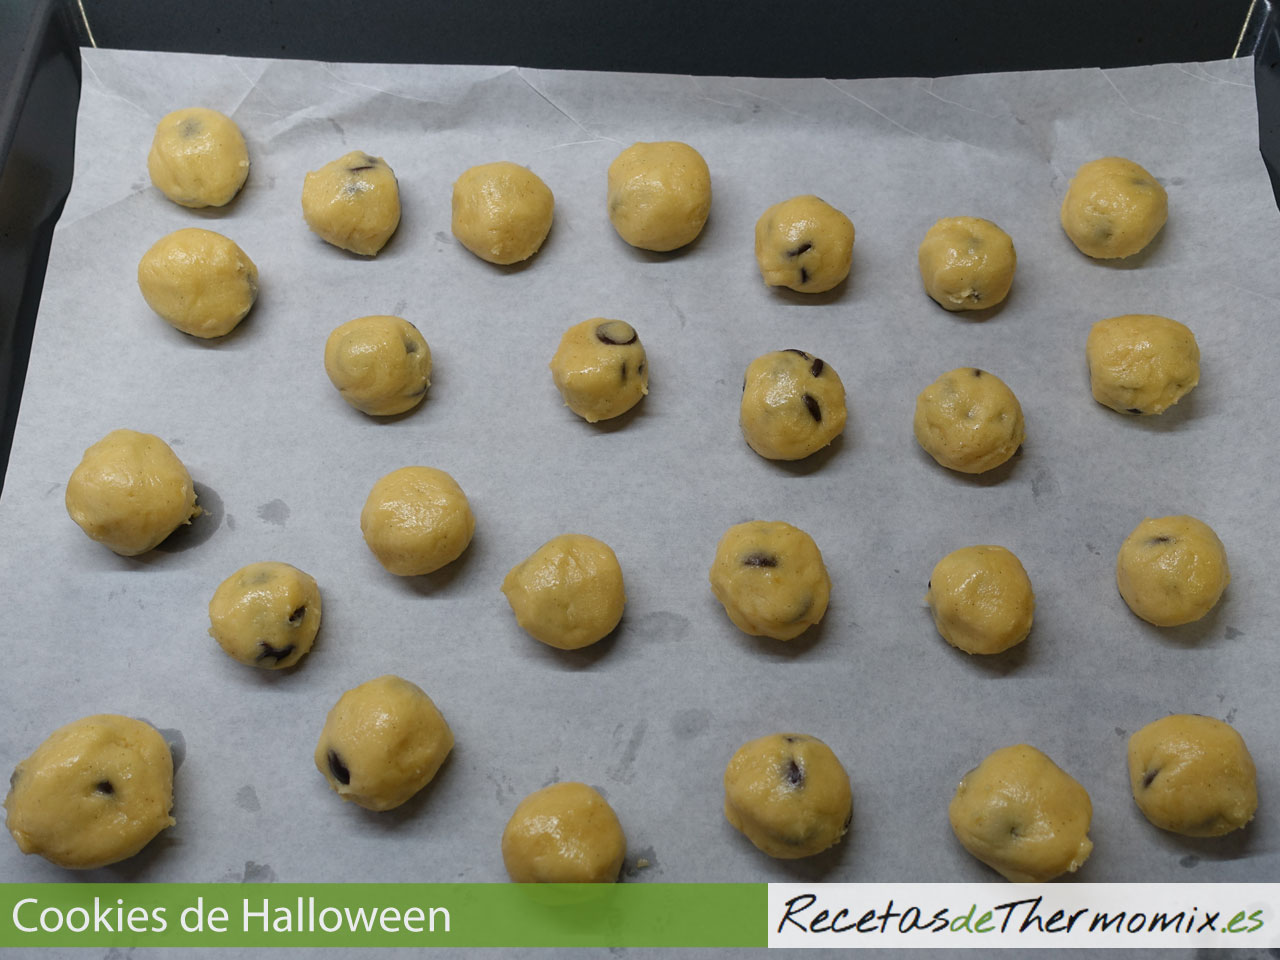 Masa de cookies con chocolate para Halloween en Thermomix